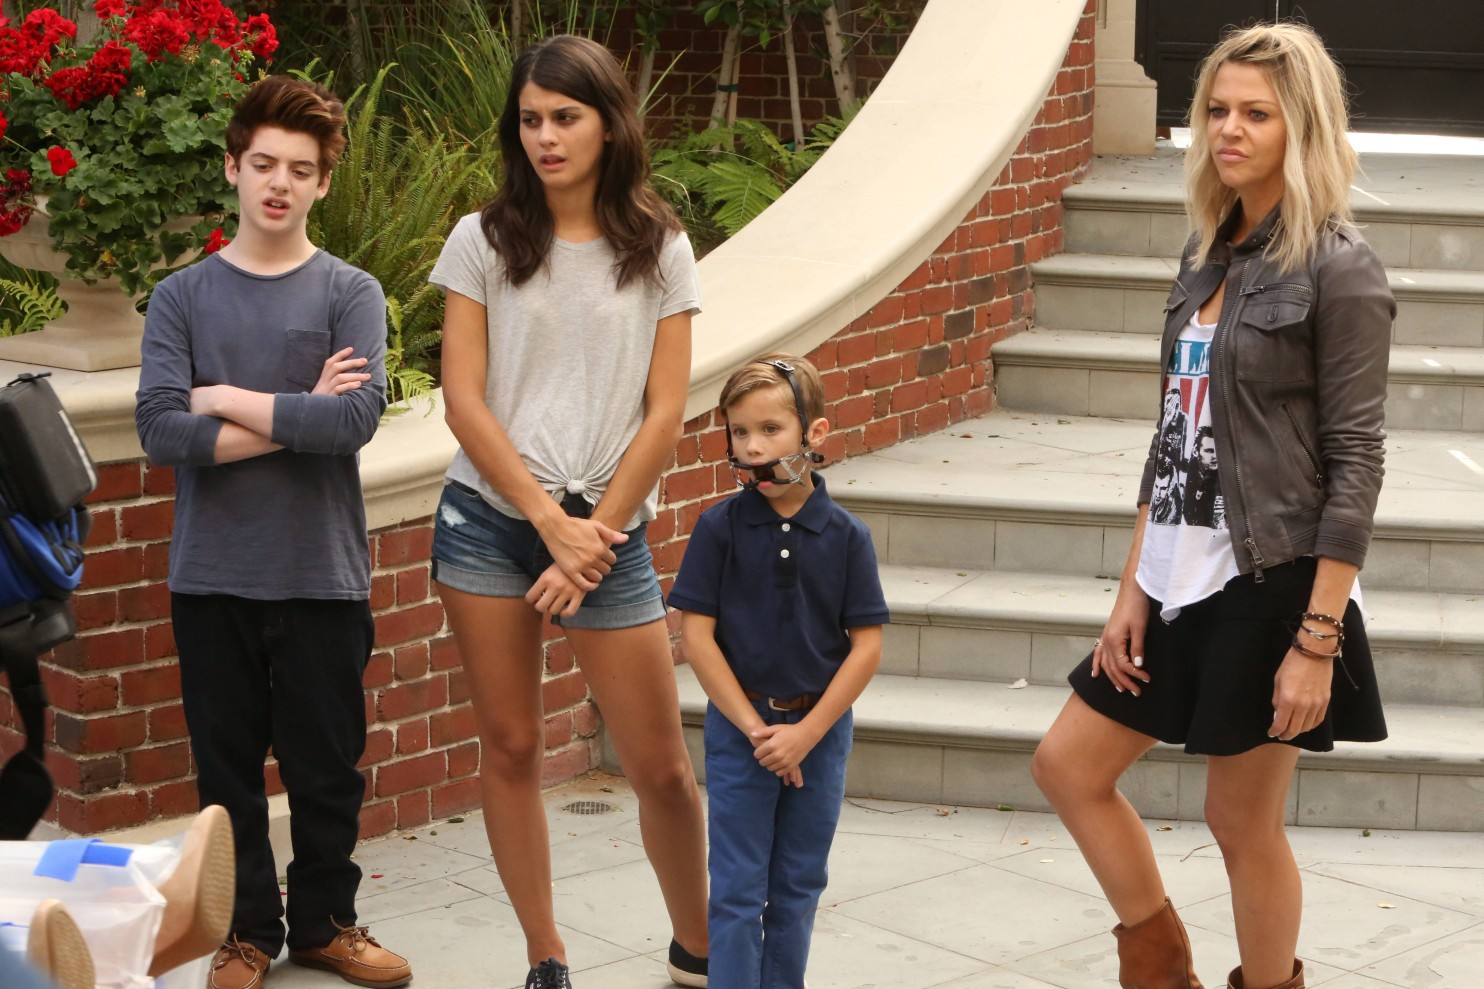 TheMick S1 Ep102 sc18 PM 0058 f hires2